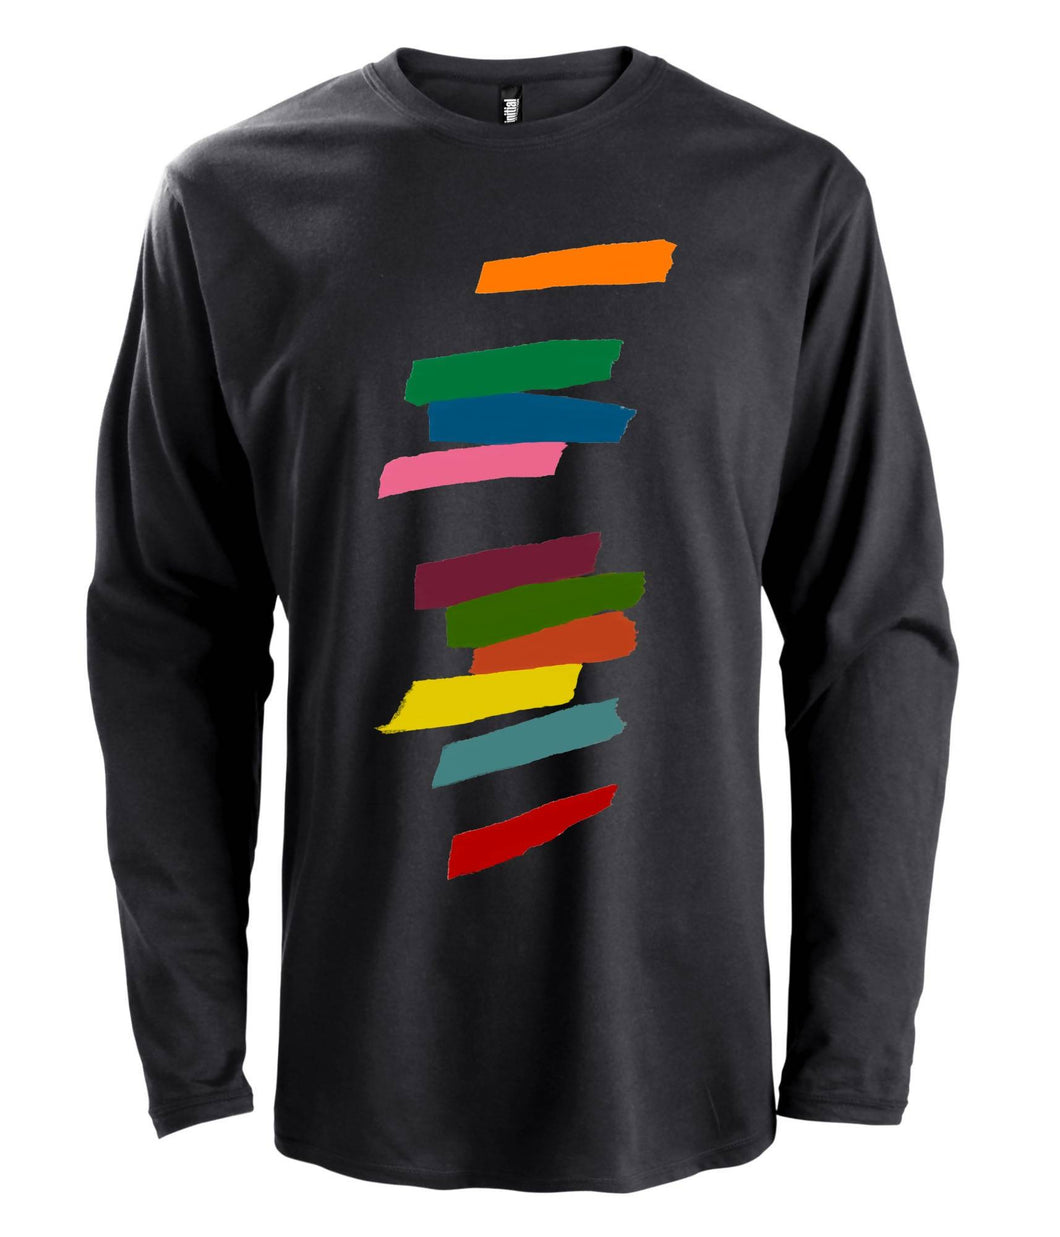 Men's Organic Cotton T Shirt - Design: Long Sleeve Tempo Giusto